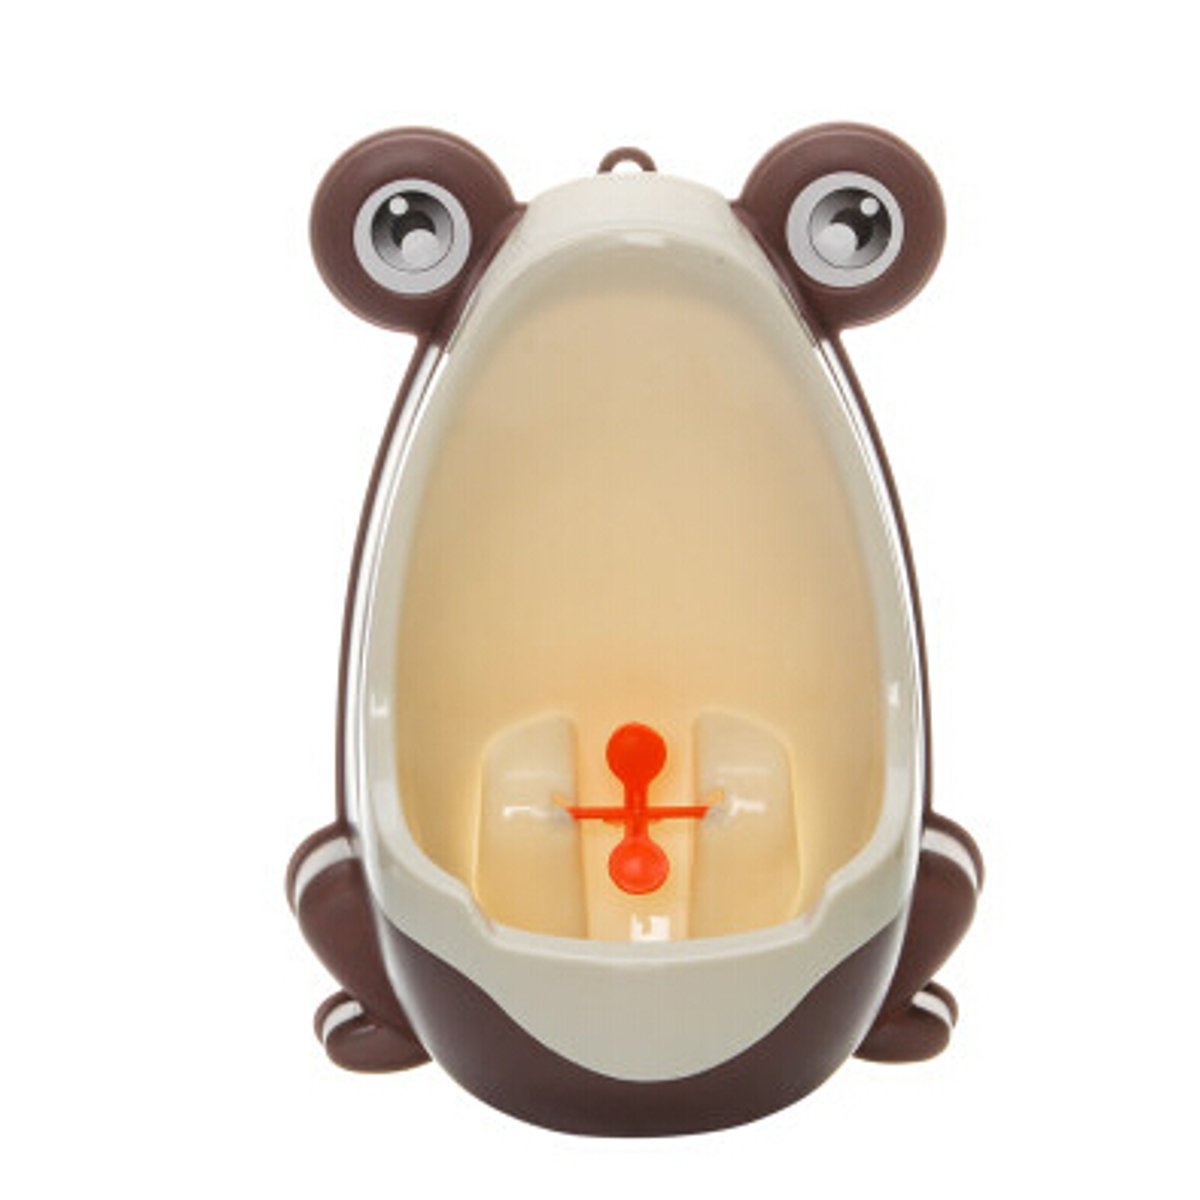 Meigar Cute Frog Potty Training Urinal Toilet Urine Train Froggy Potty for Children Kids Toddler Baby Boys Portable Plastic Male Urinals Pee Trainer Funny Aiming Target